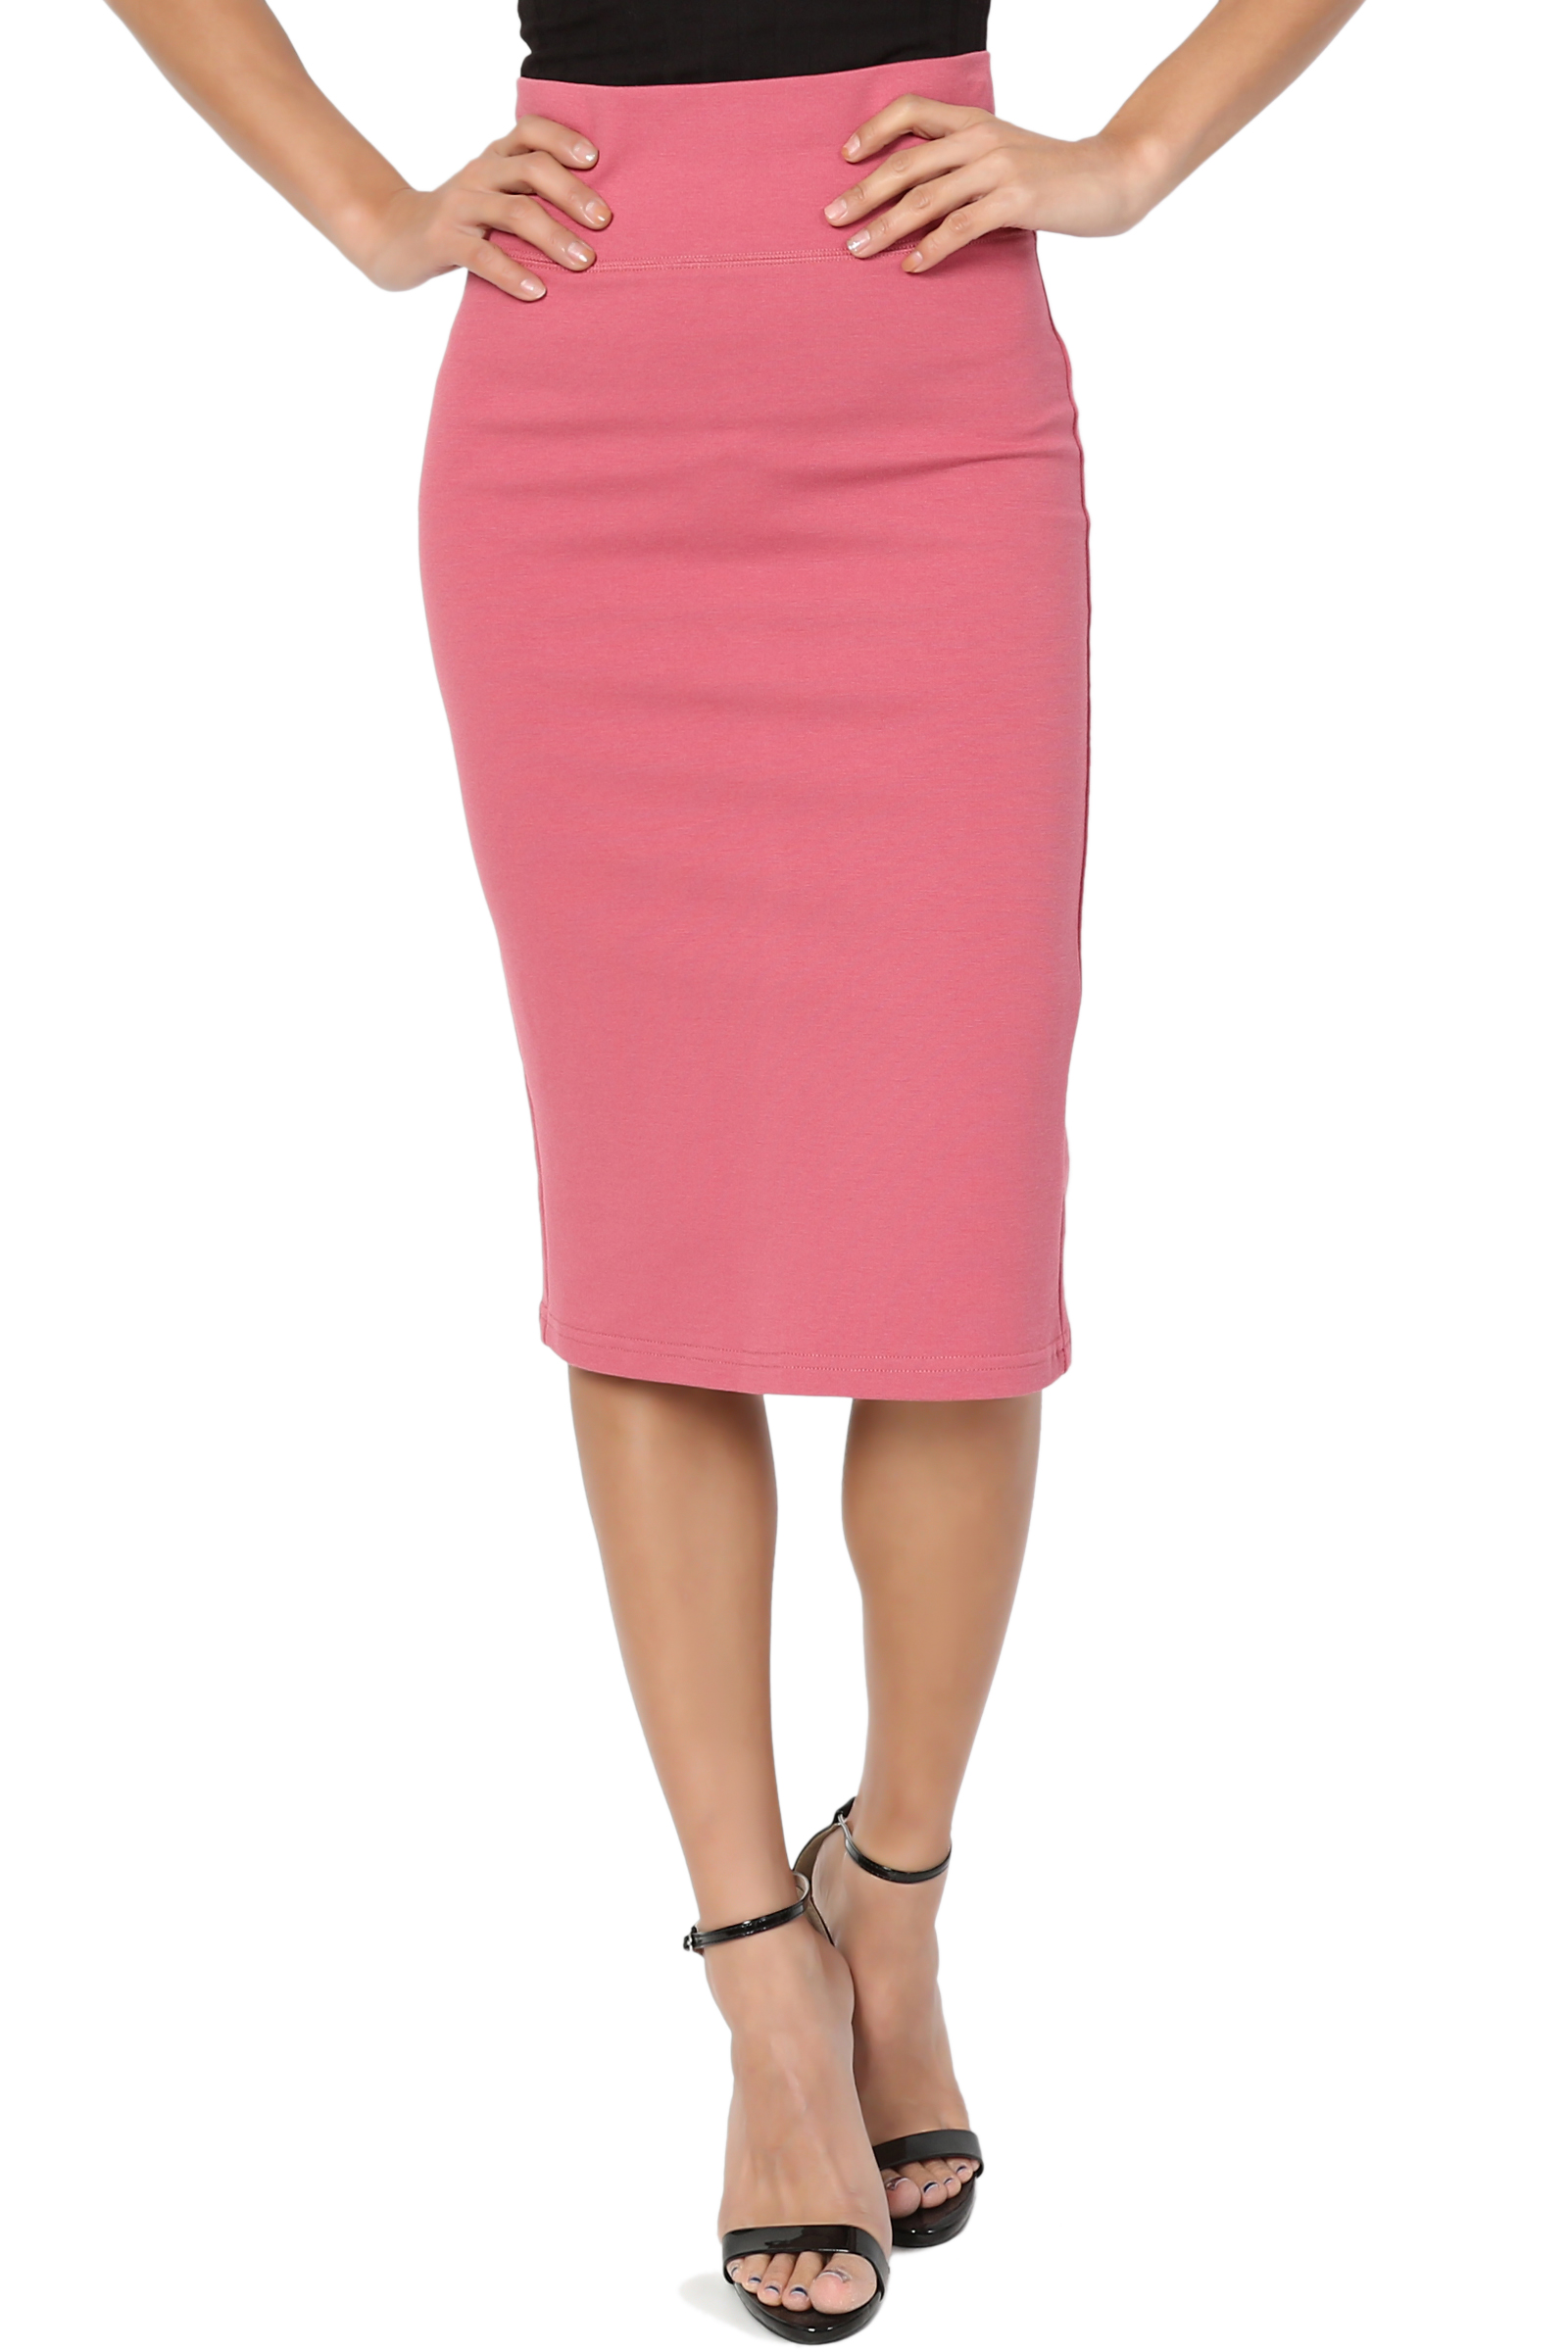 TheMogan Junior's PLUS Curvy 4 Way Stretchy Ponte Knit Knee Length Midi Pencil Skirt